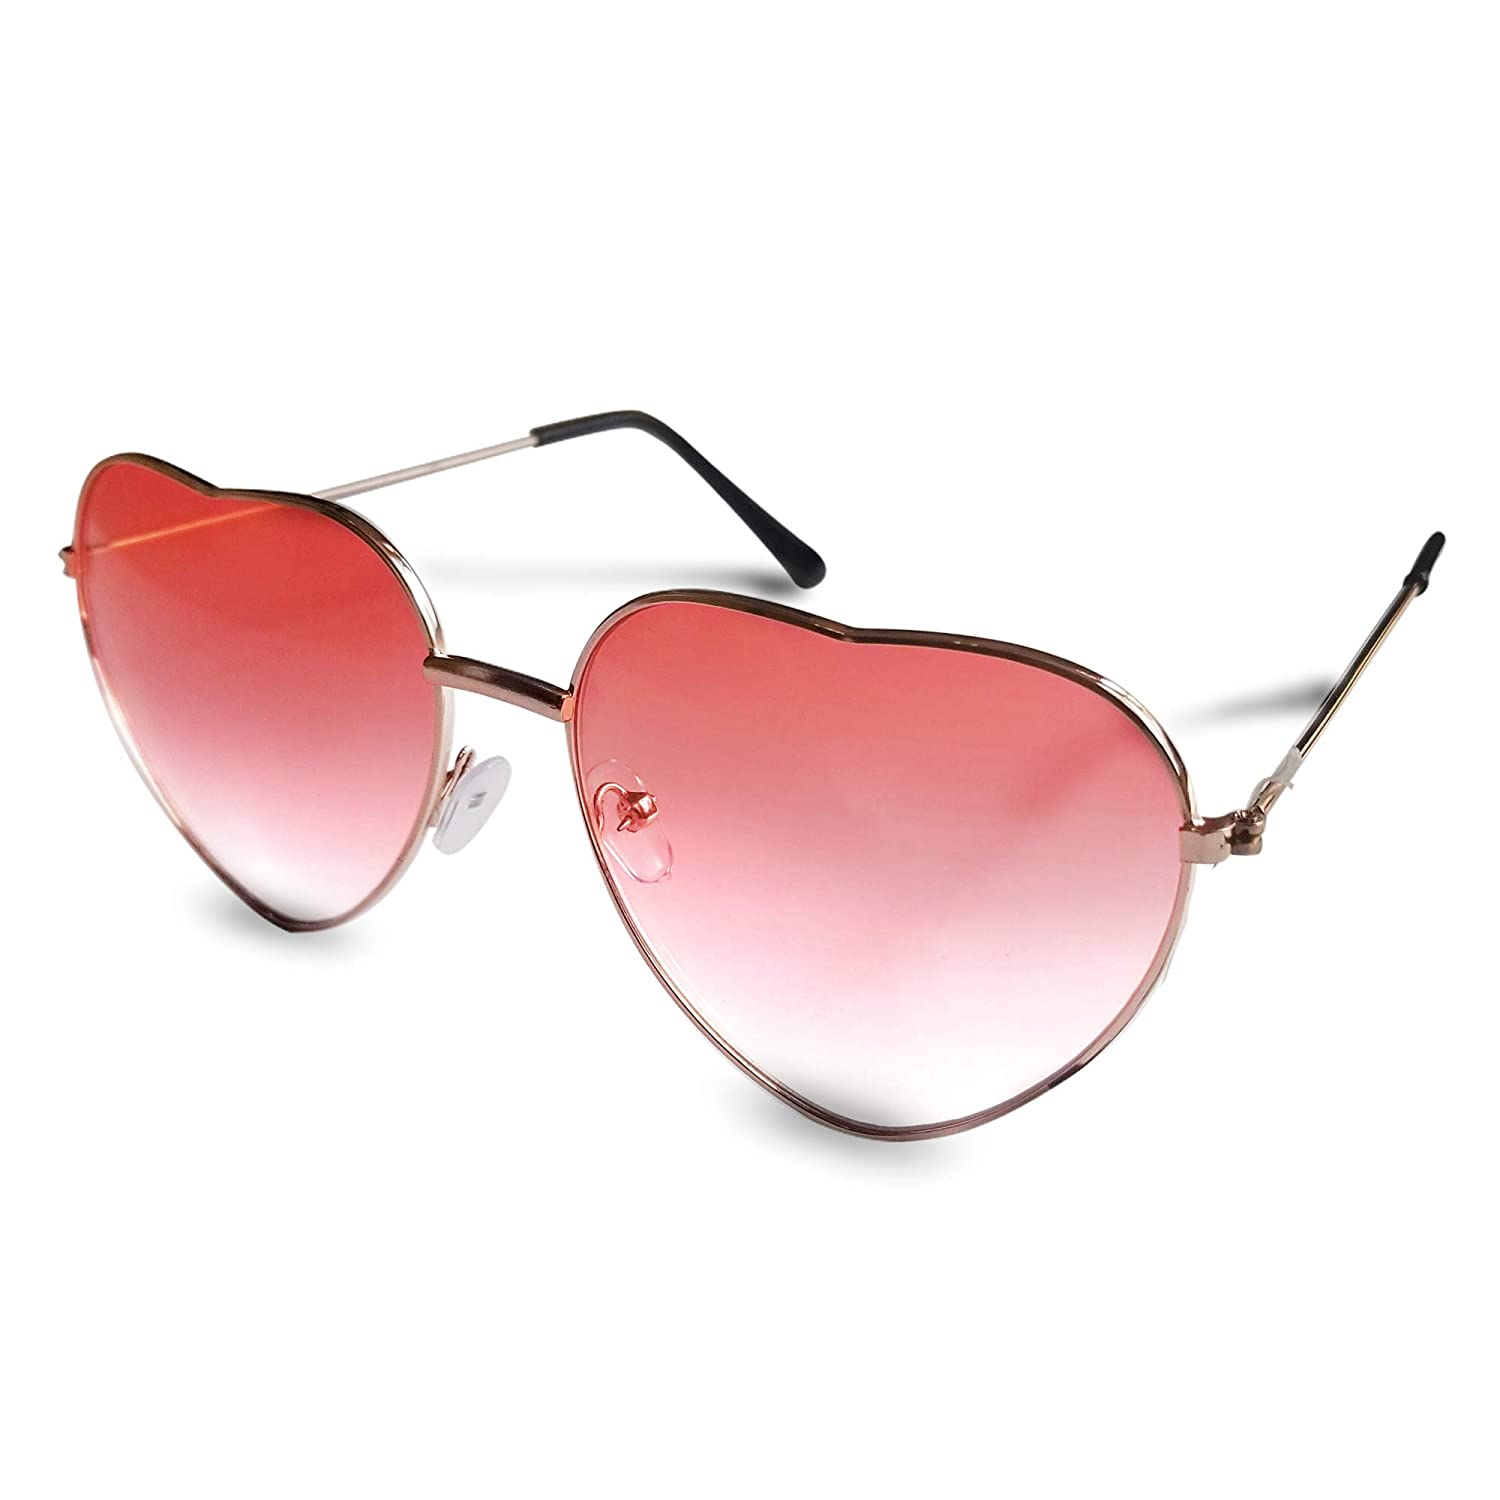 ff63c67eb79 Heart Sunglasses - Pink Lens Heart Shaped Sunglasses for Women and Men.  Metal Frame Red to Pink Heart Glasses in Cute Aviator Style eye glasses.